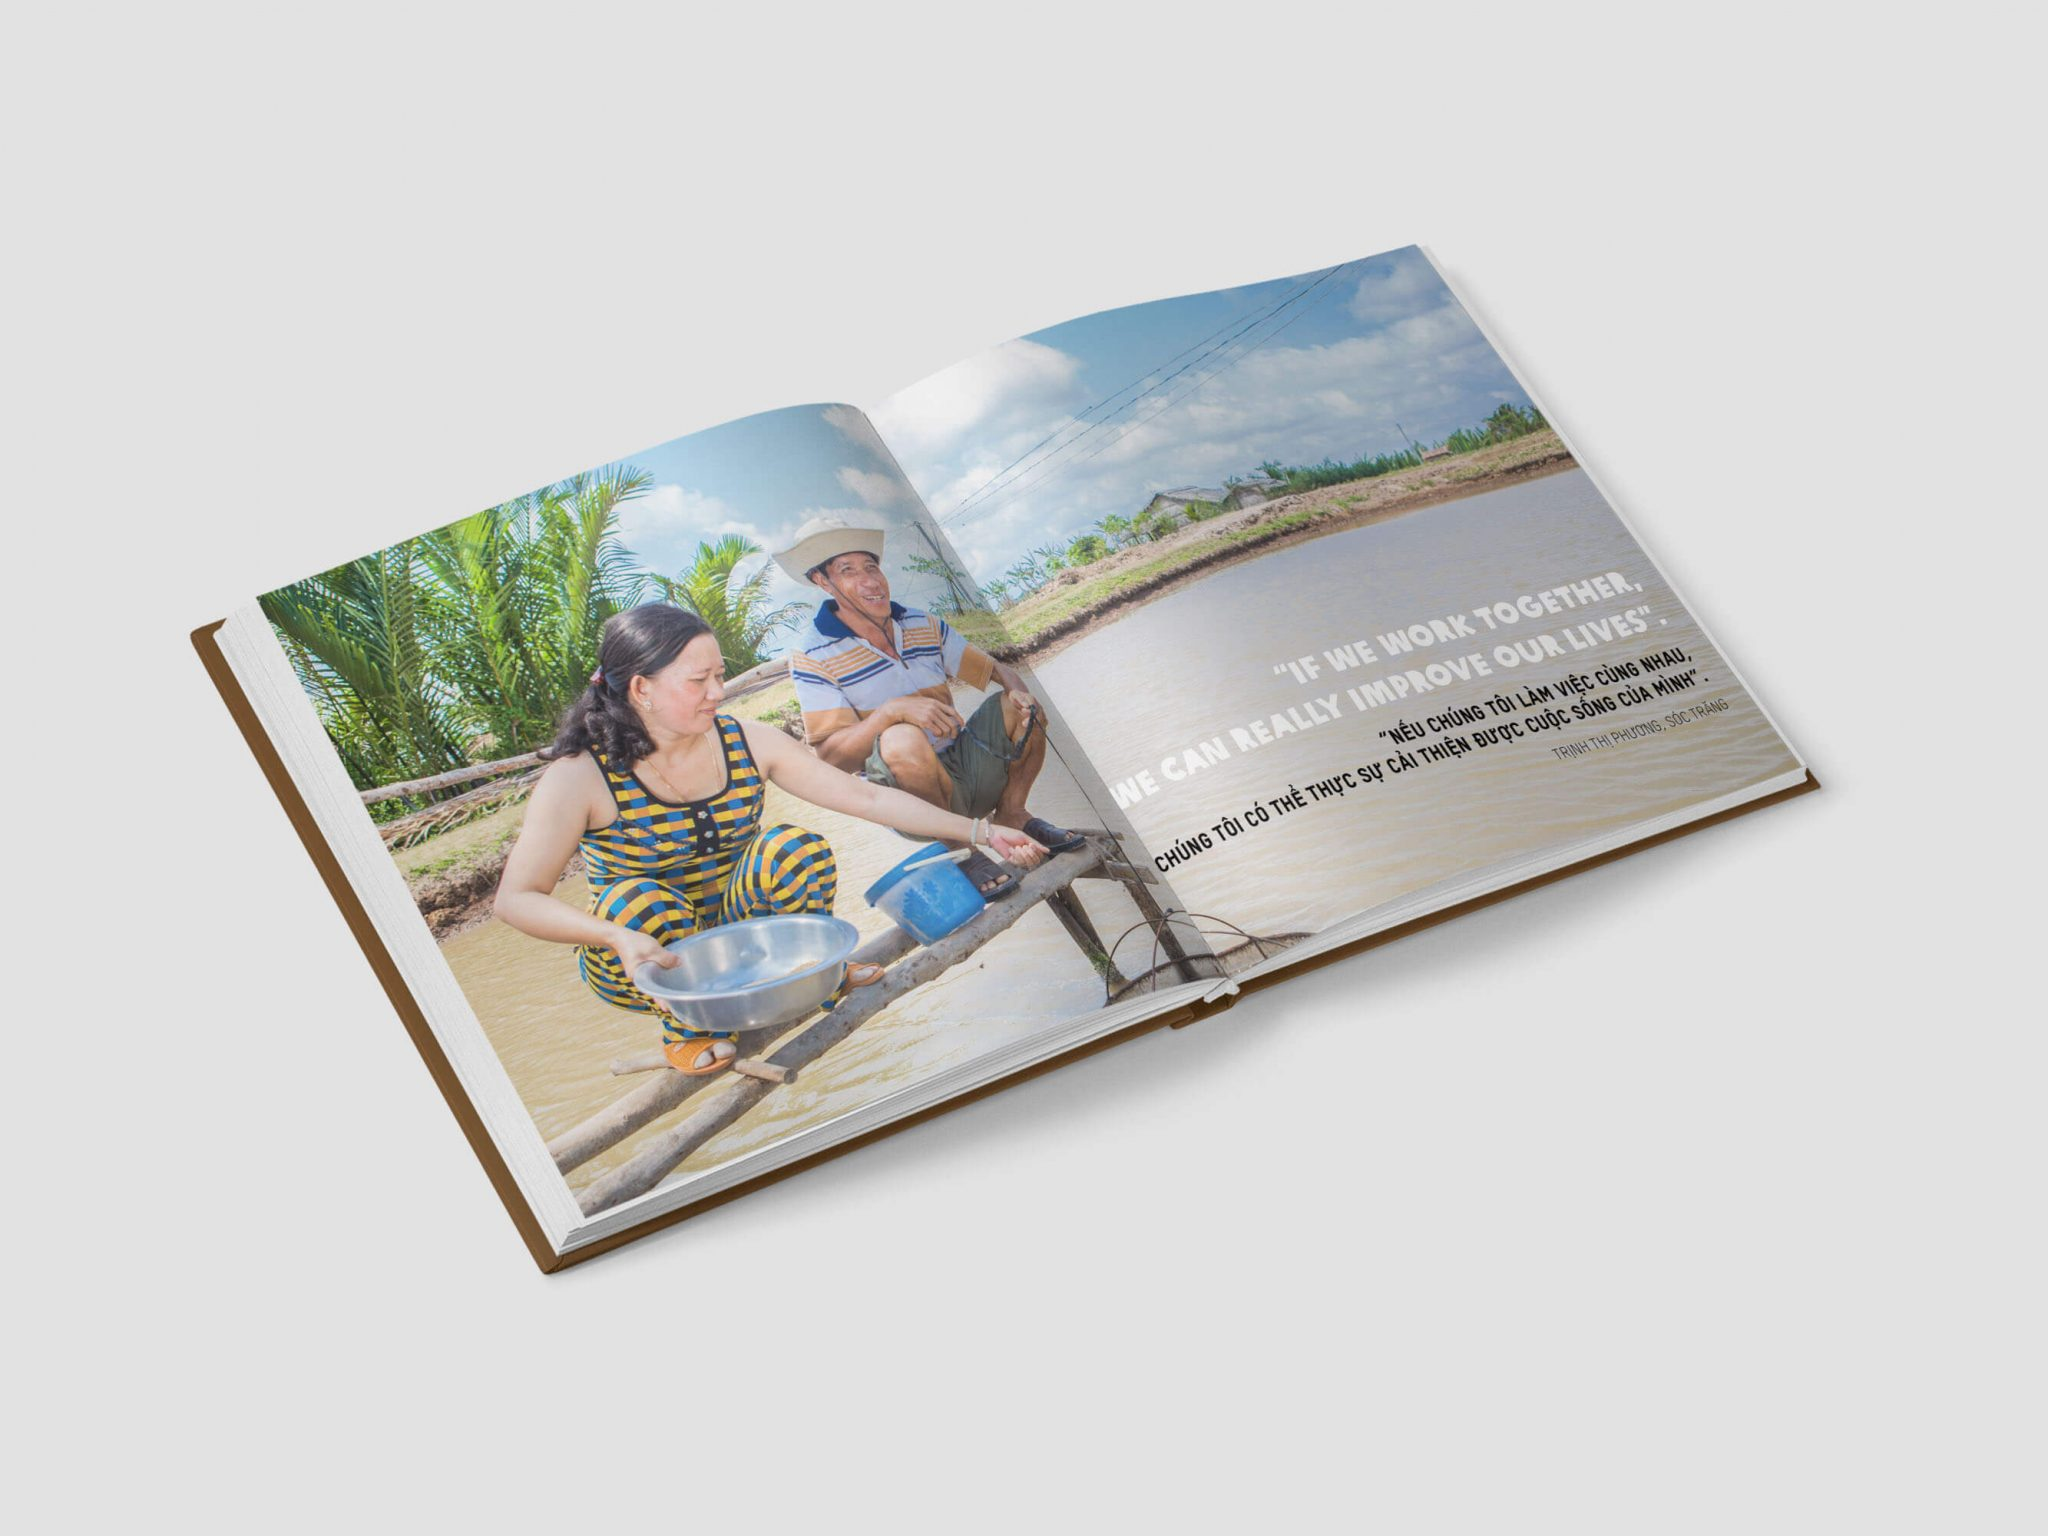 Inside munication for Development Ltd s coffee table book for